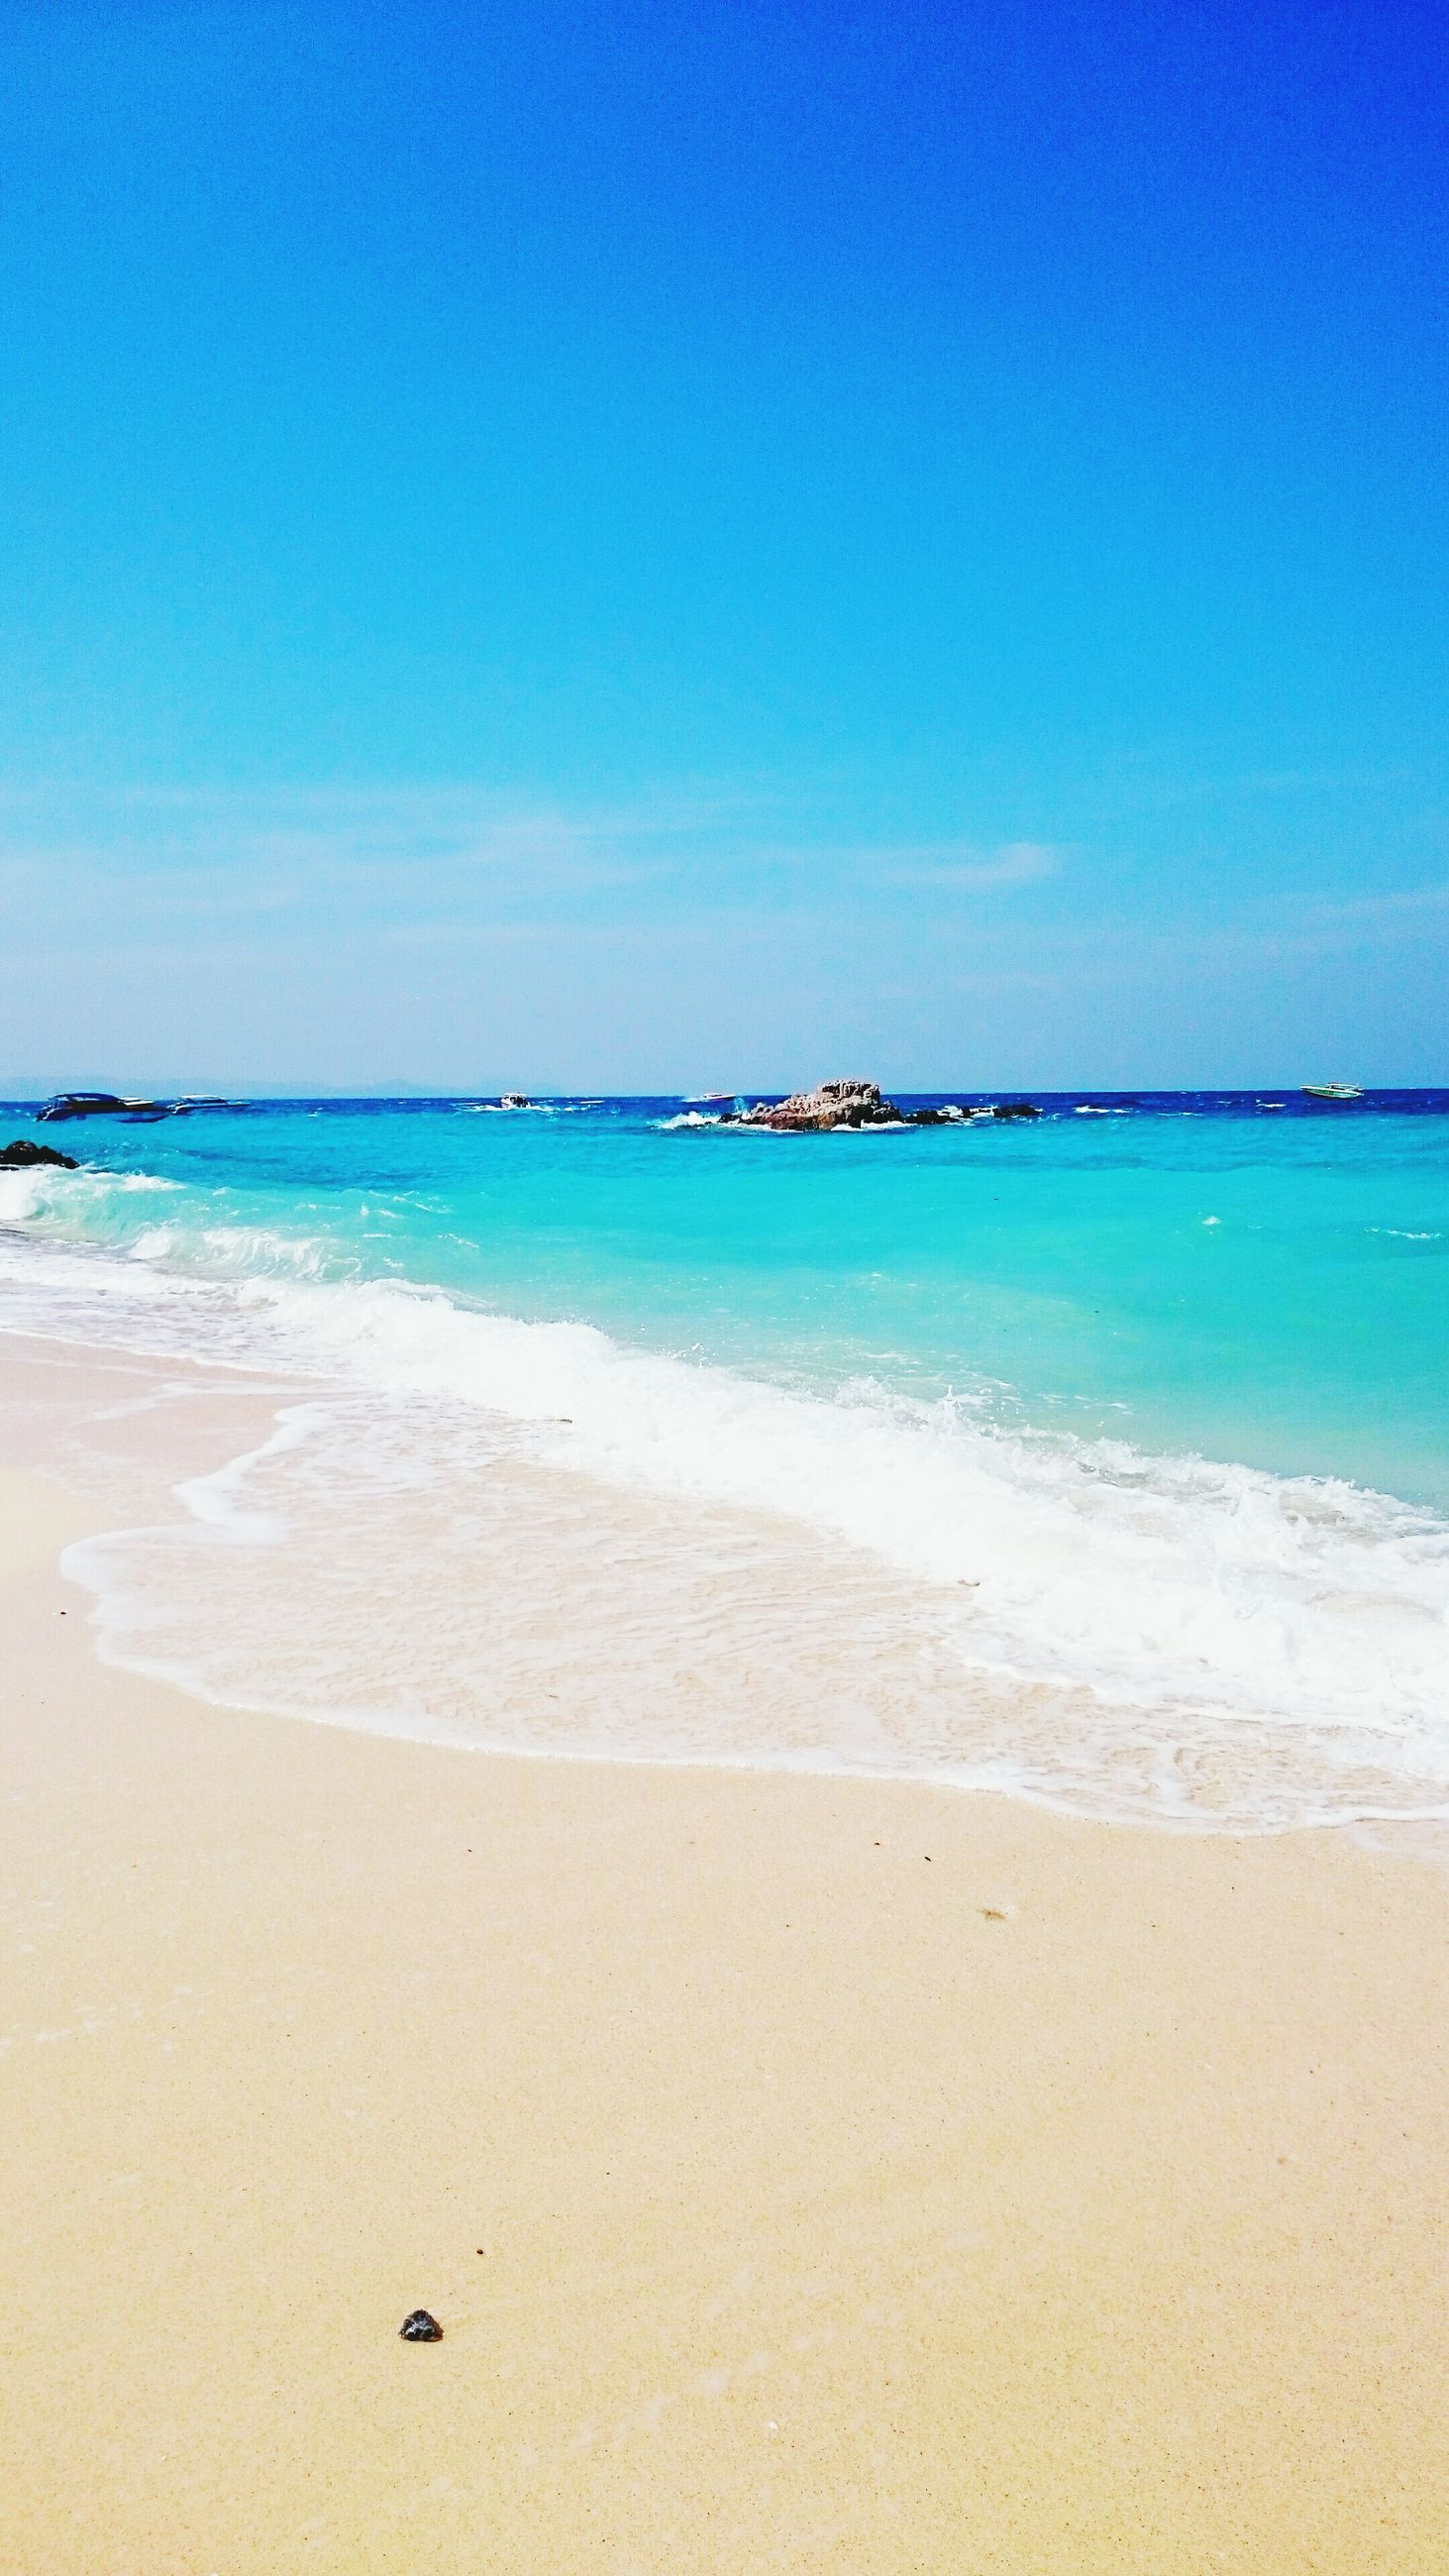 beach, sea, water, sand, blue, shore, horizon over water, tranquil scene, tranquility, scenics, beauty in nature, clear sky, copy space, nature, coastline, idyllic, sky, incidental people, outdoors, day